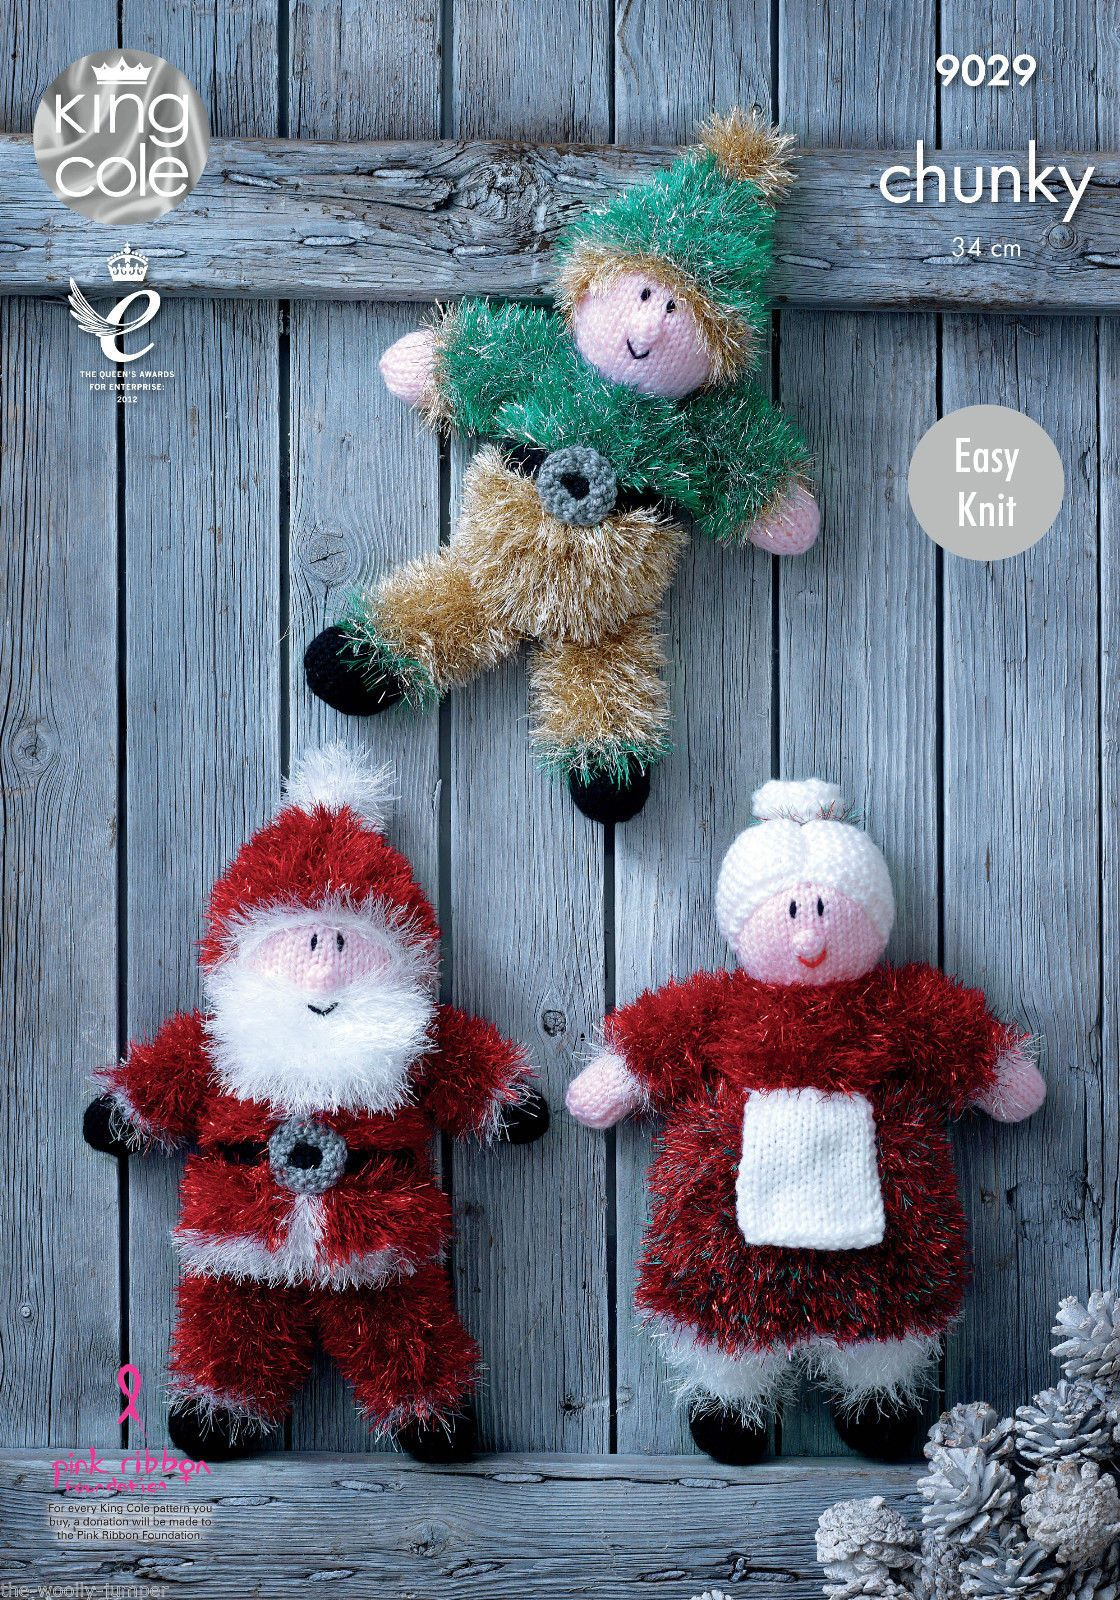 King Cole Tinsel Owl Knitting Pattern : 9029 - KING COLE EASY KNIT TINSEL CHUNKY CHRISTMAS TOYS KNITTING PATTERN